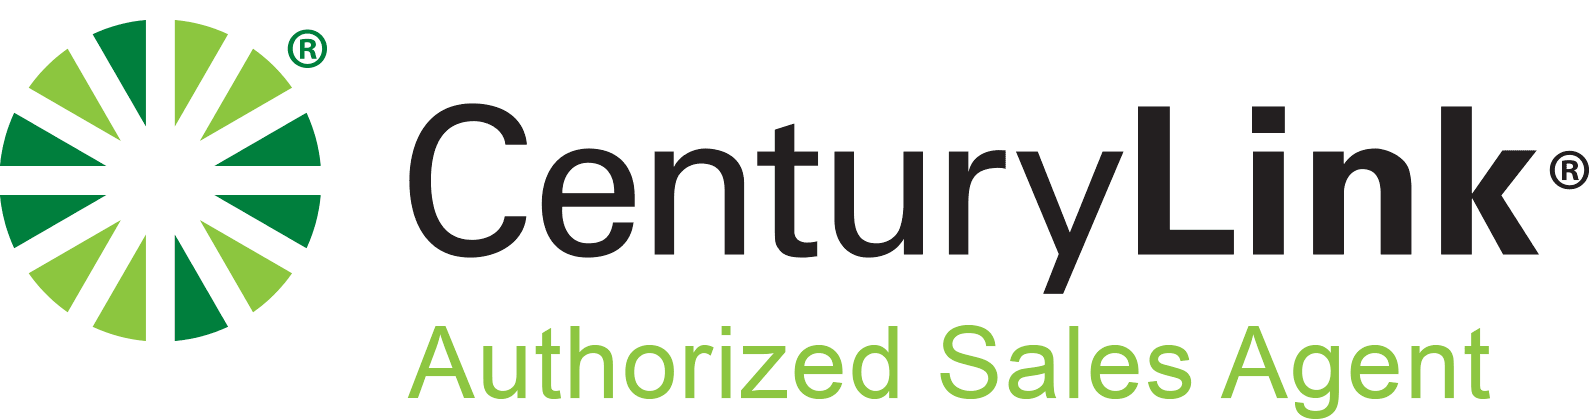 Centurylink - Authorized Sales Agent